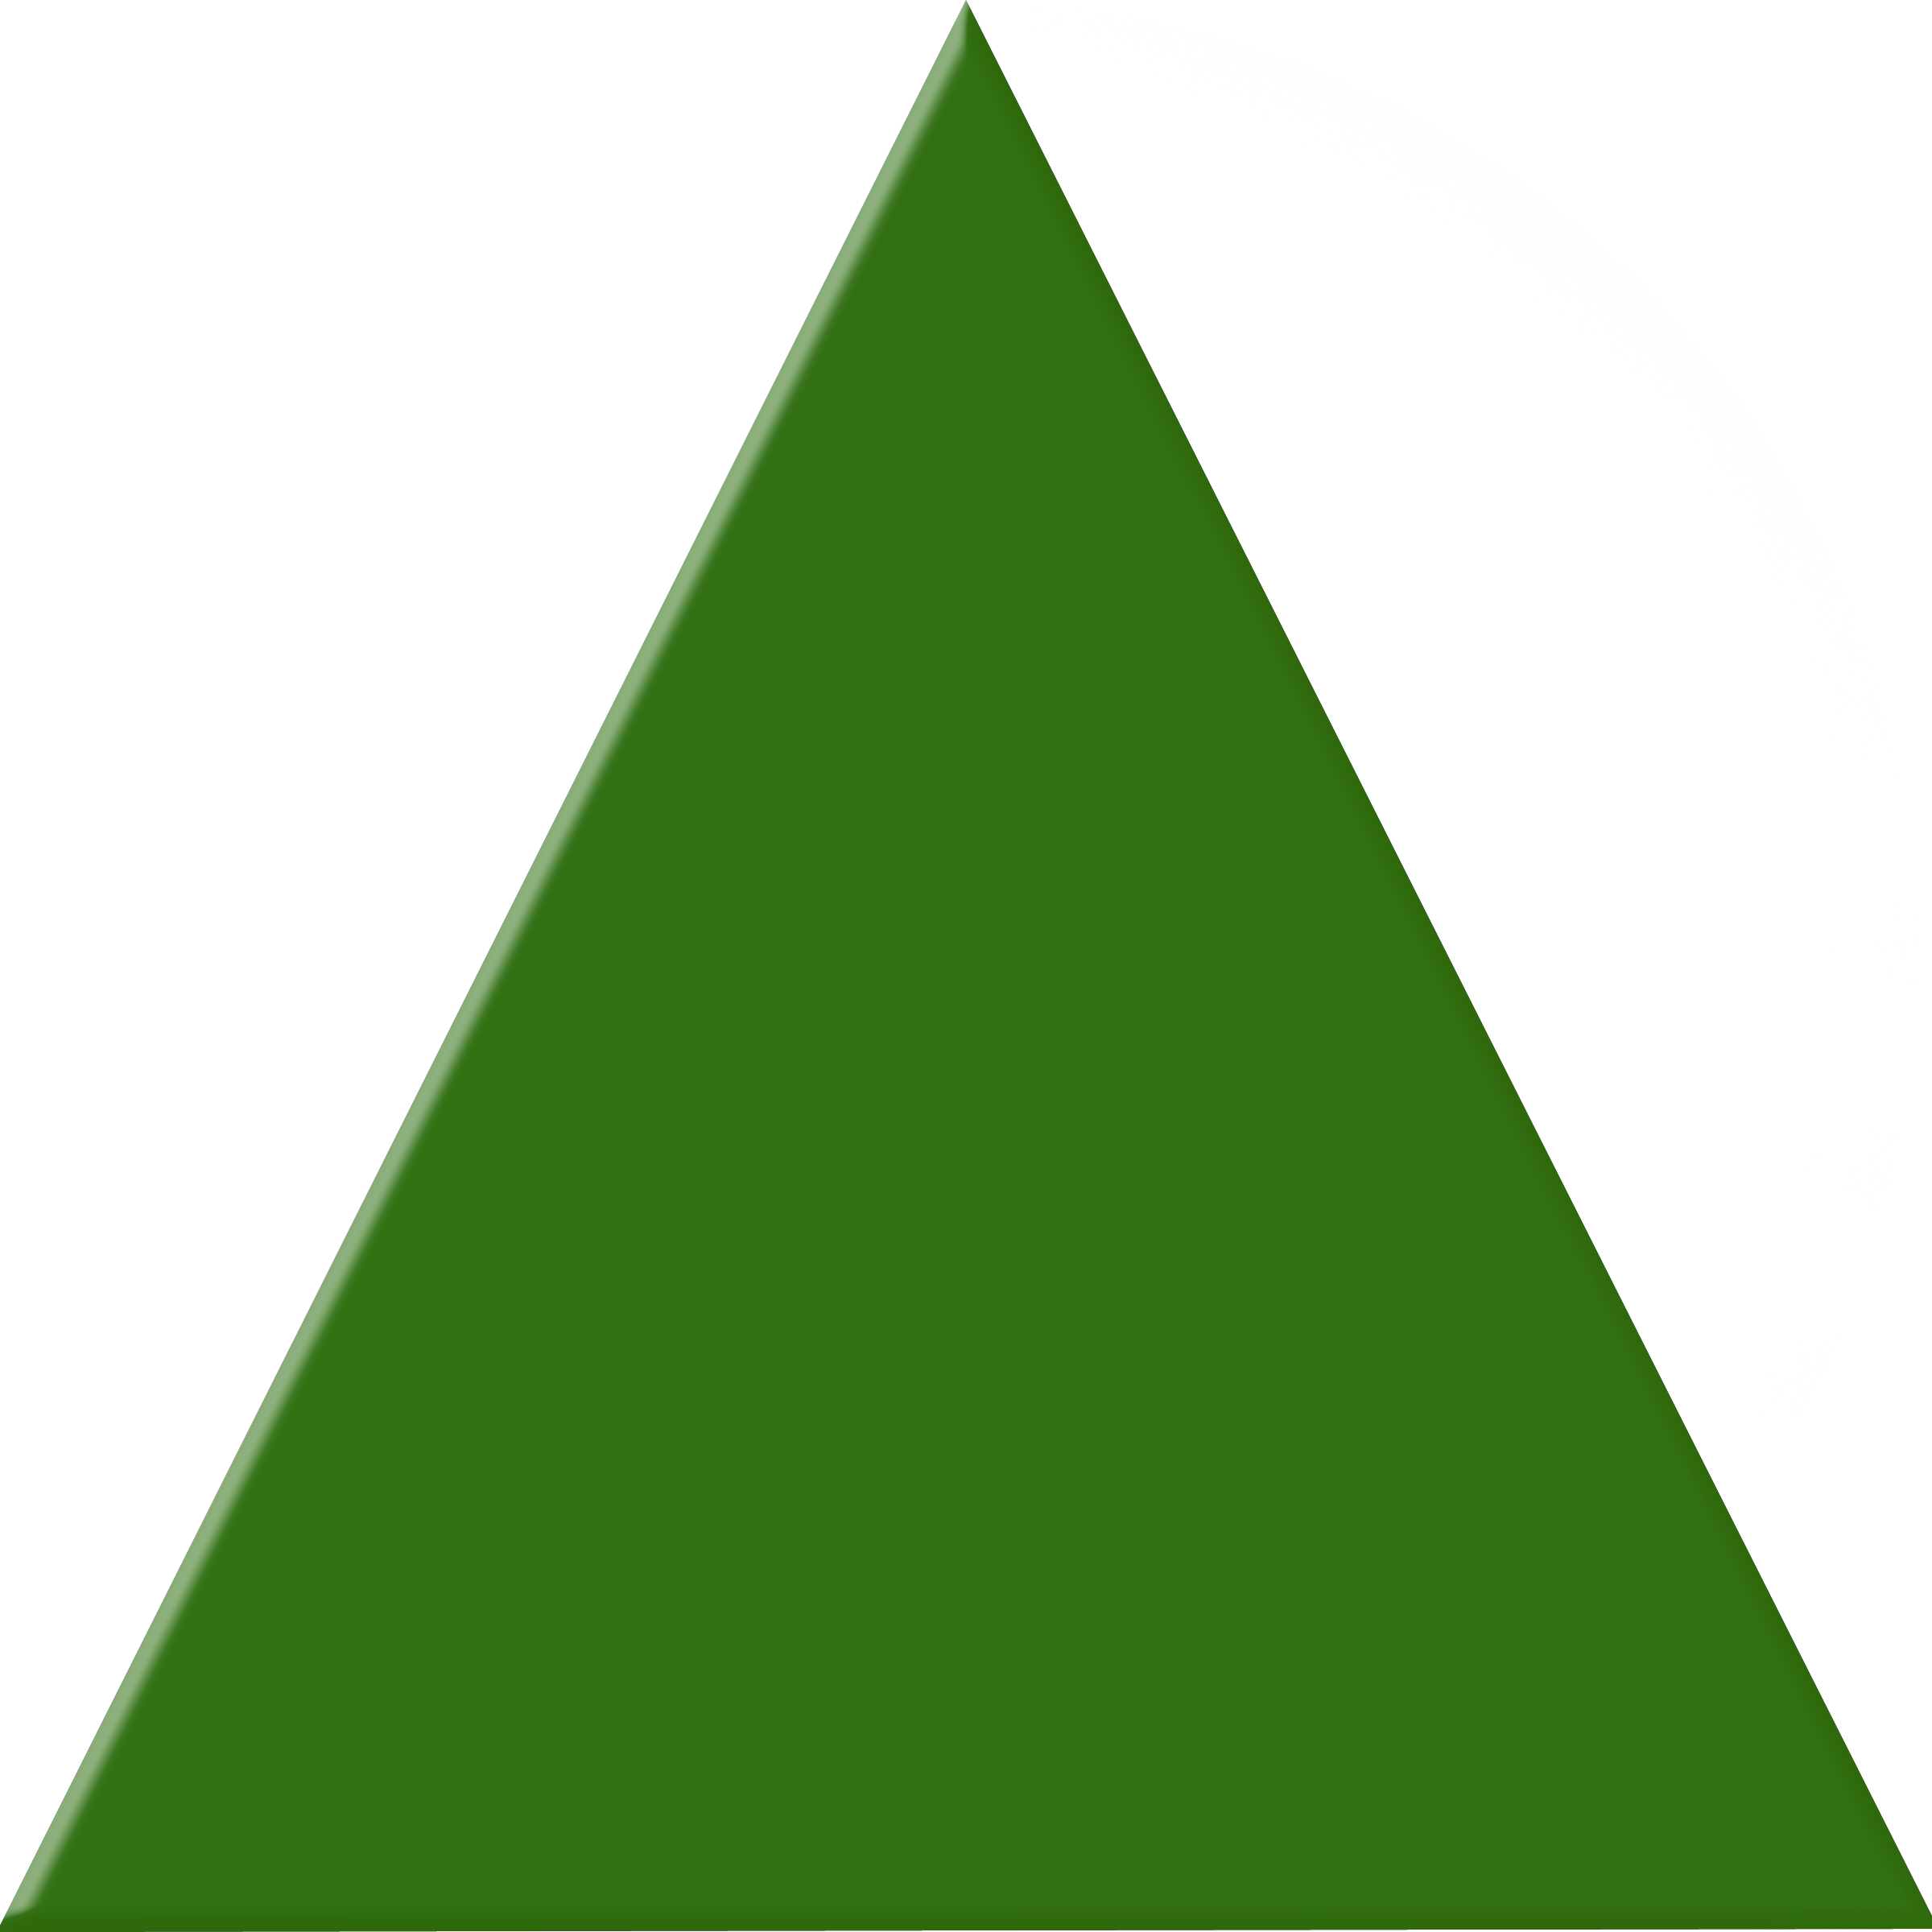 svg transparent Hipster vector triangle. Green free images at